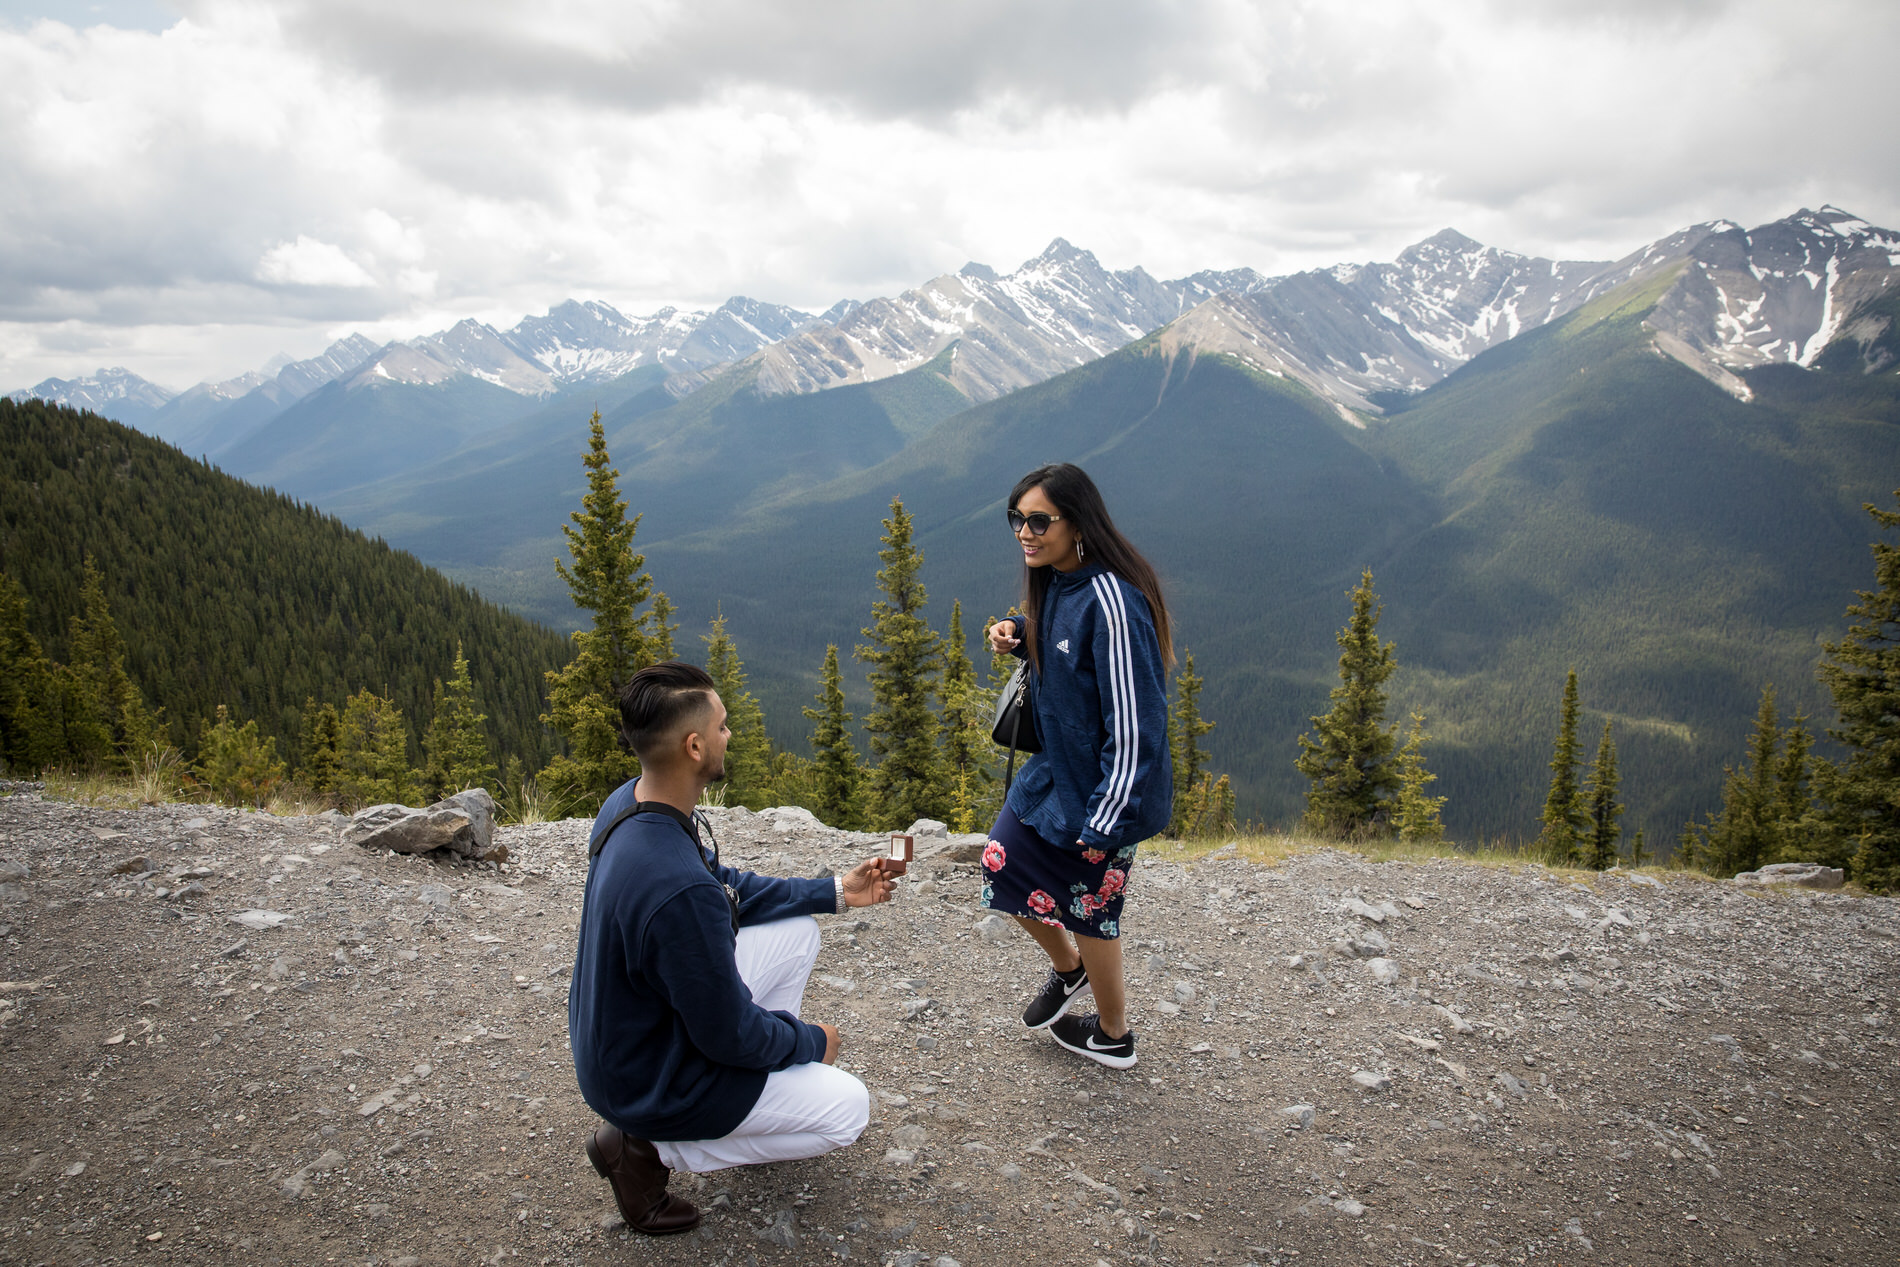 Banff Gondola Surprise Proposal